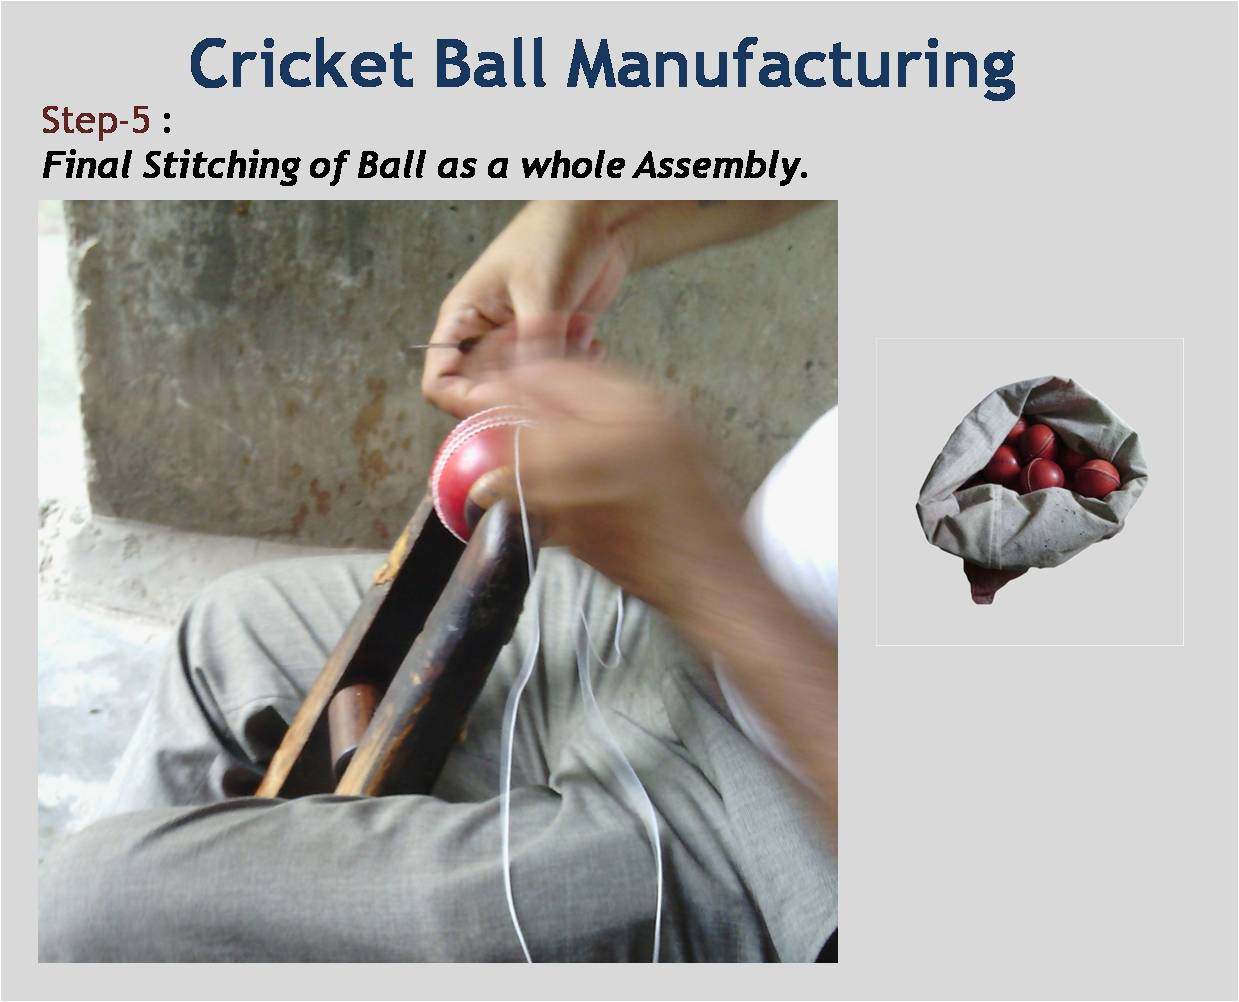 Cricket Ball Manufacturing Final Stitching of Ball